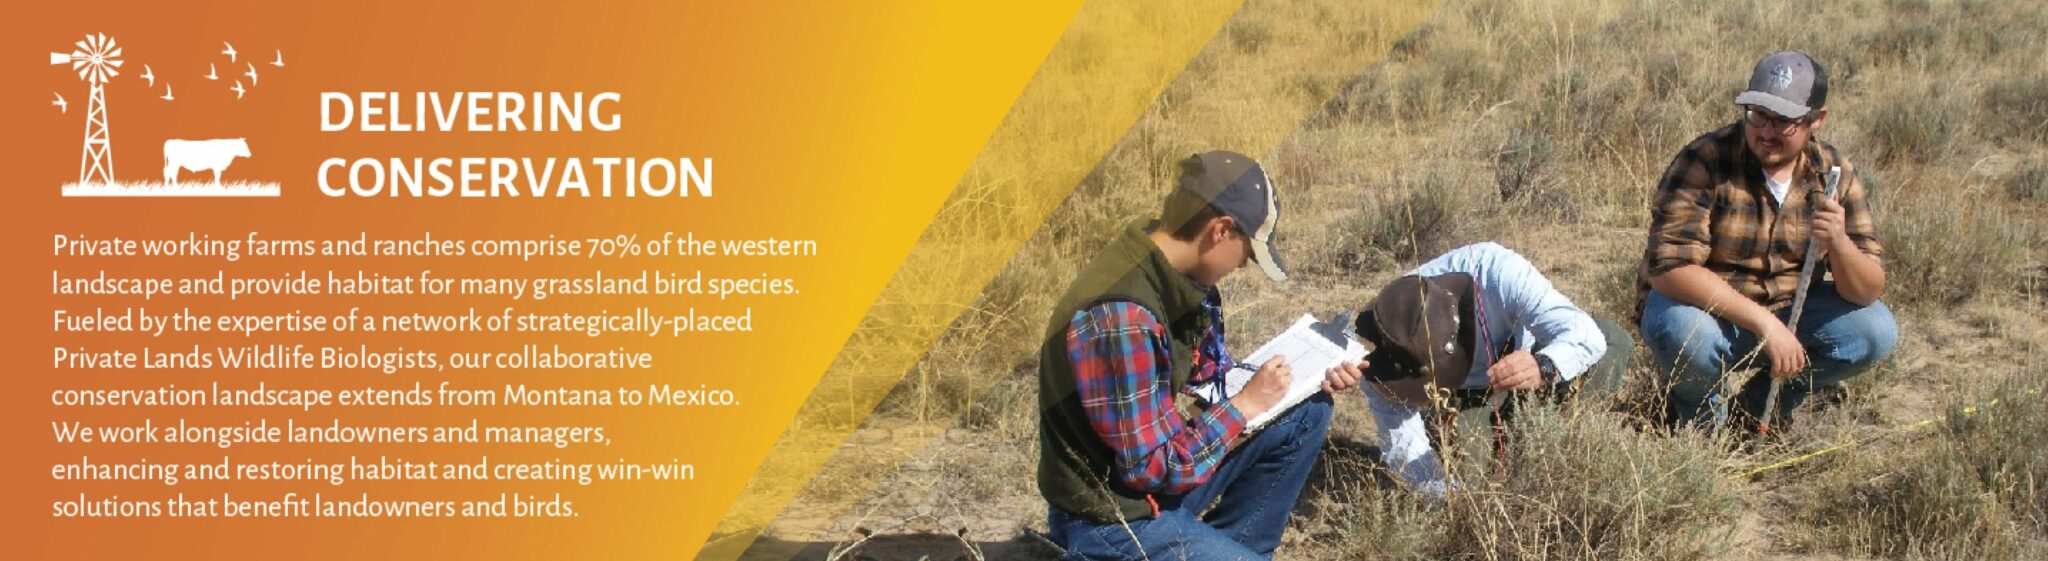 Delivering conservation! Private working farms and ranches comprise 70% of the western landscape and provide habitat for many grassland bird species. Fueled by the expertise of a network of strategically-placed Private Lands Wildlife Biologists, our collaborative conservation landscape extends from Montana to Mexico. We work alongside landowners and managers, enhancing and restoring habitat and creating win-win solutions that benefit landowners and birds.